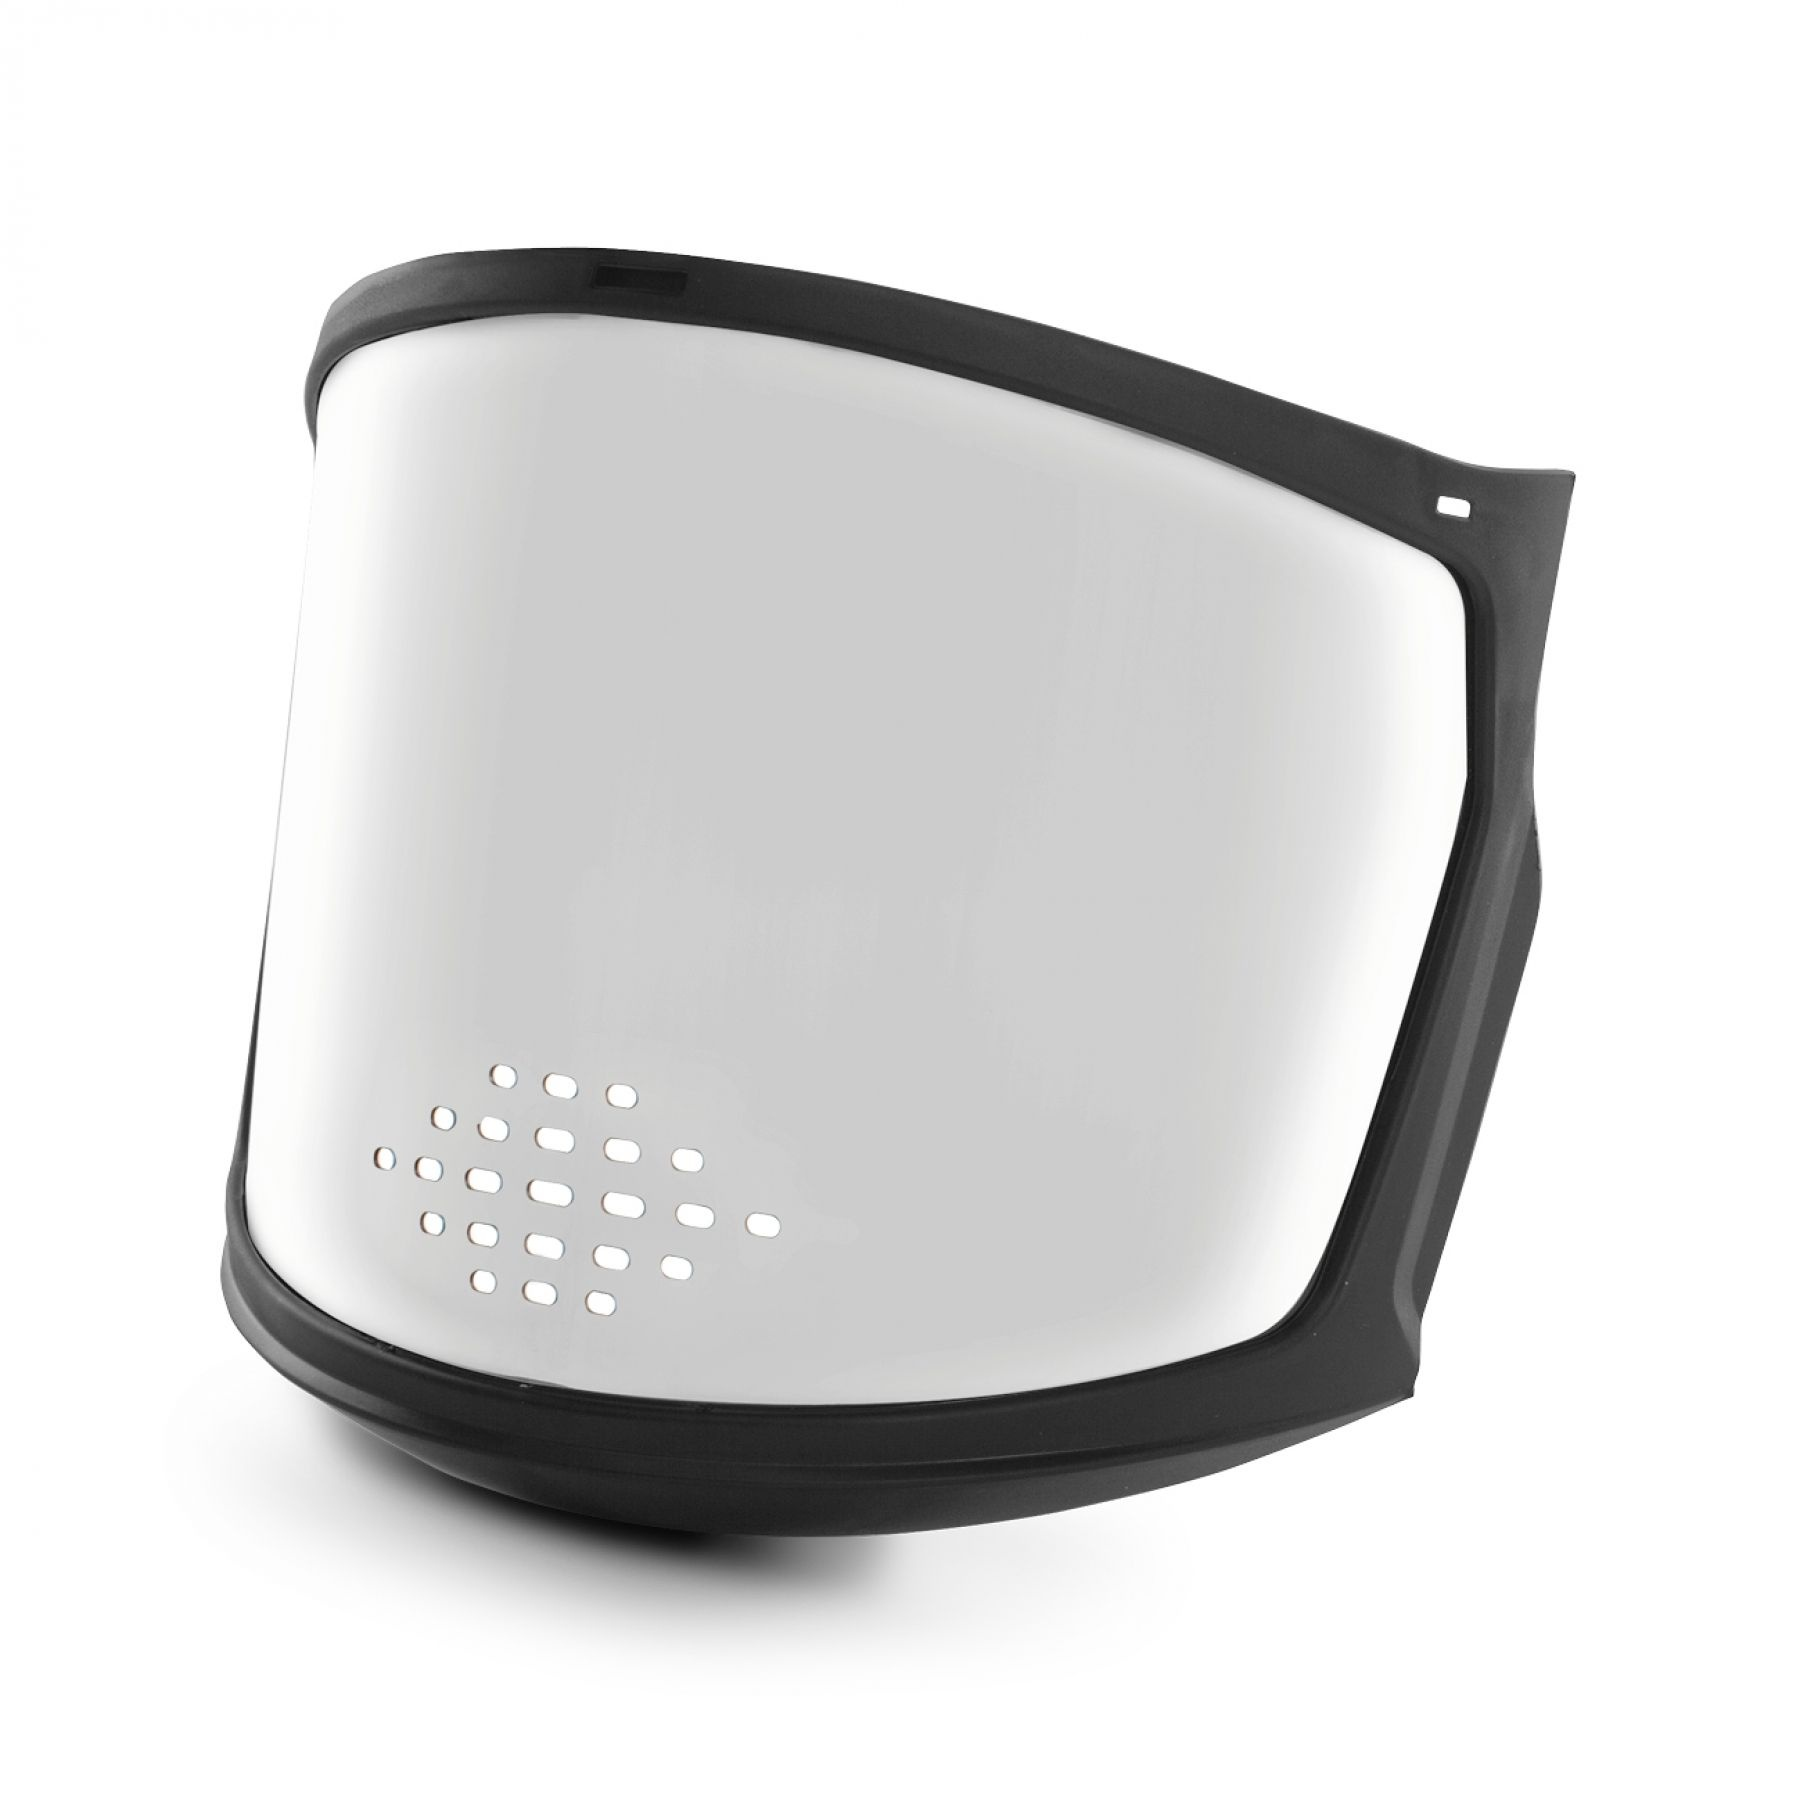 Kask Zen FF Air- Full Face Visor from GME Supply